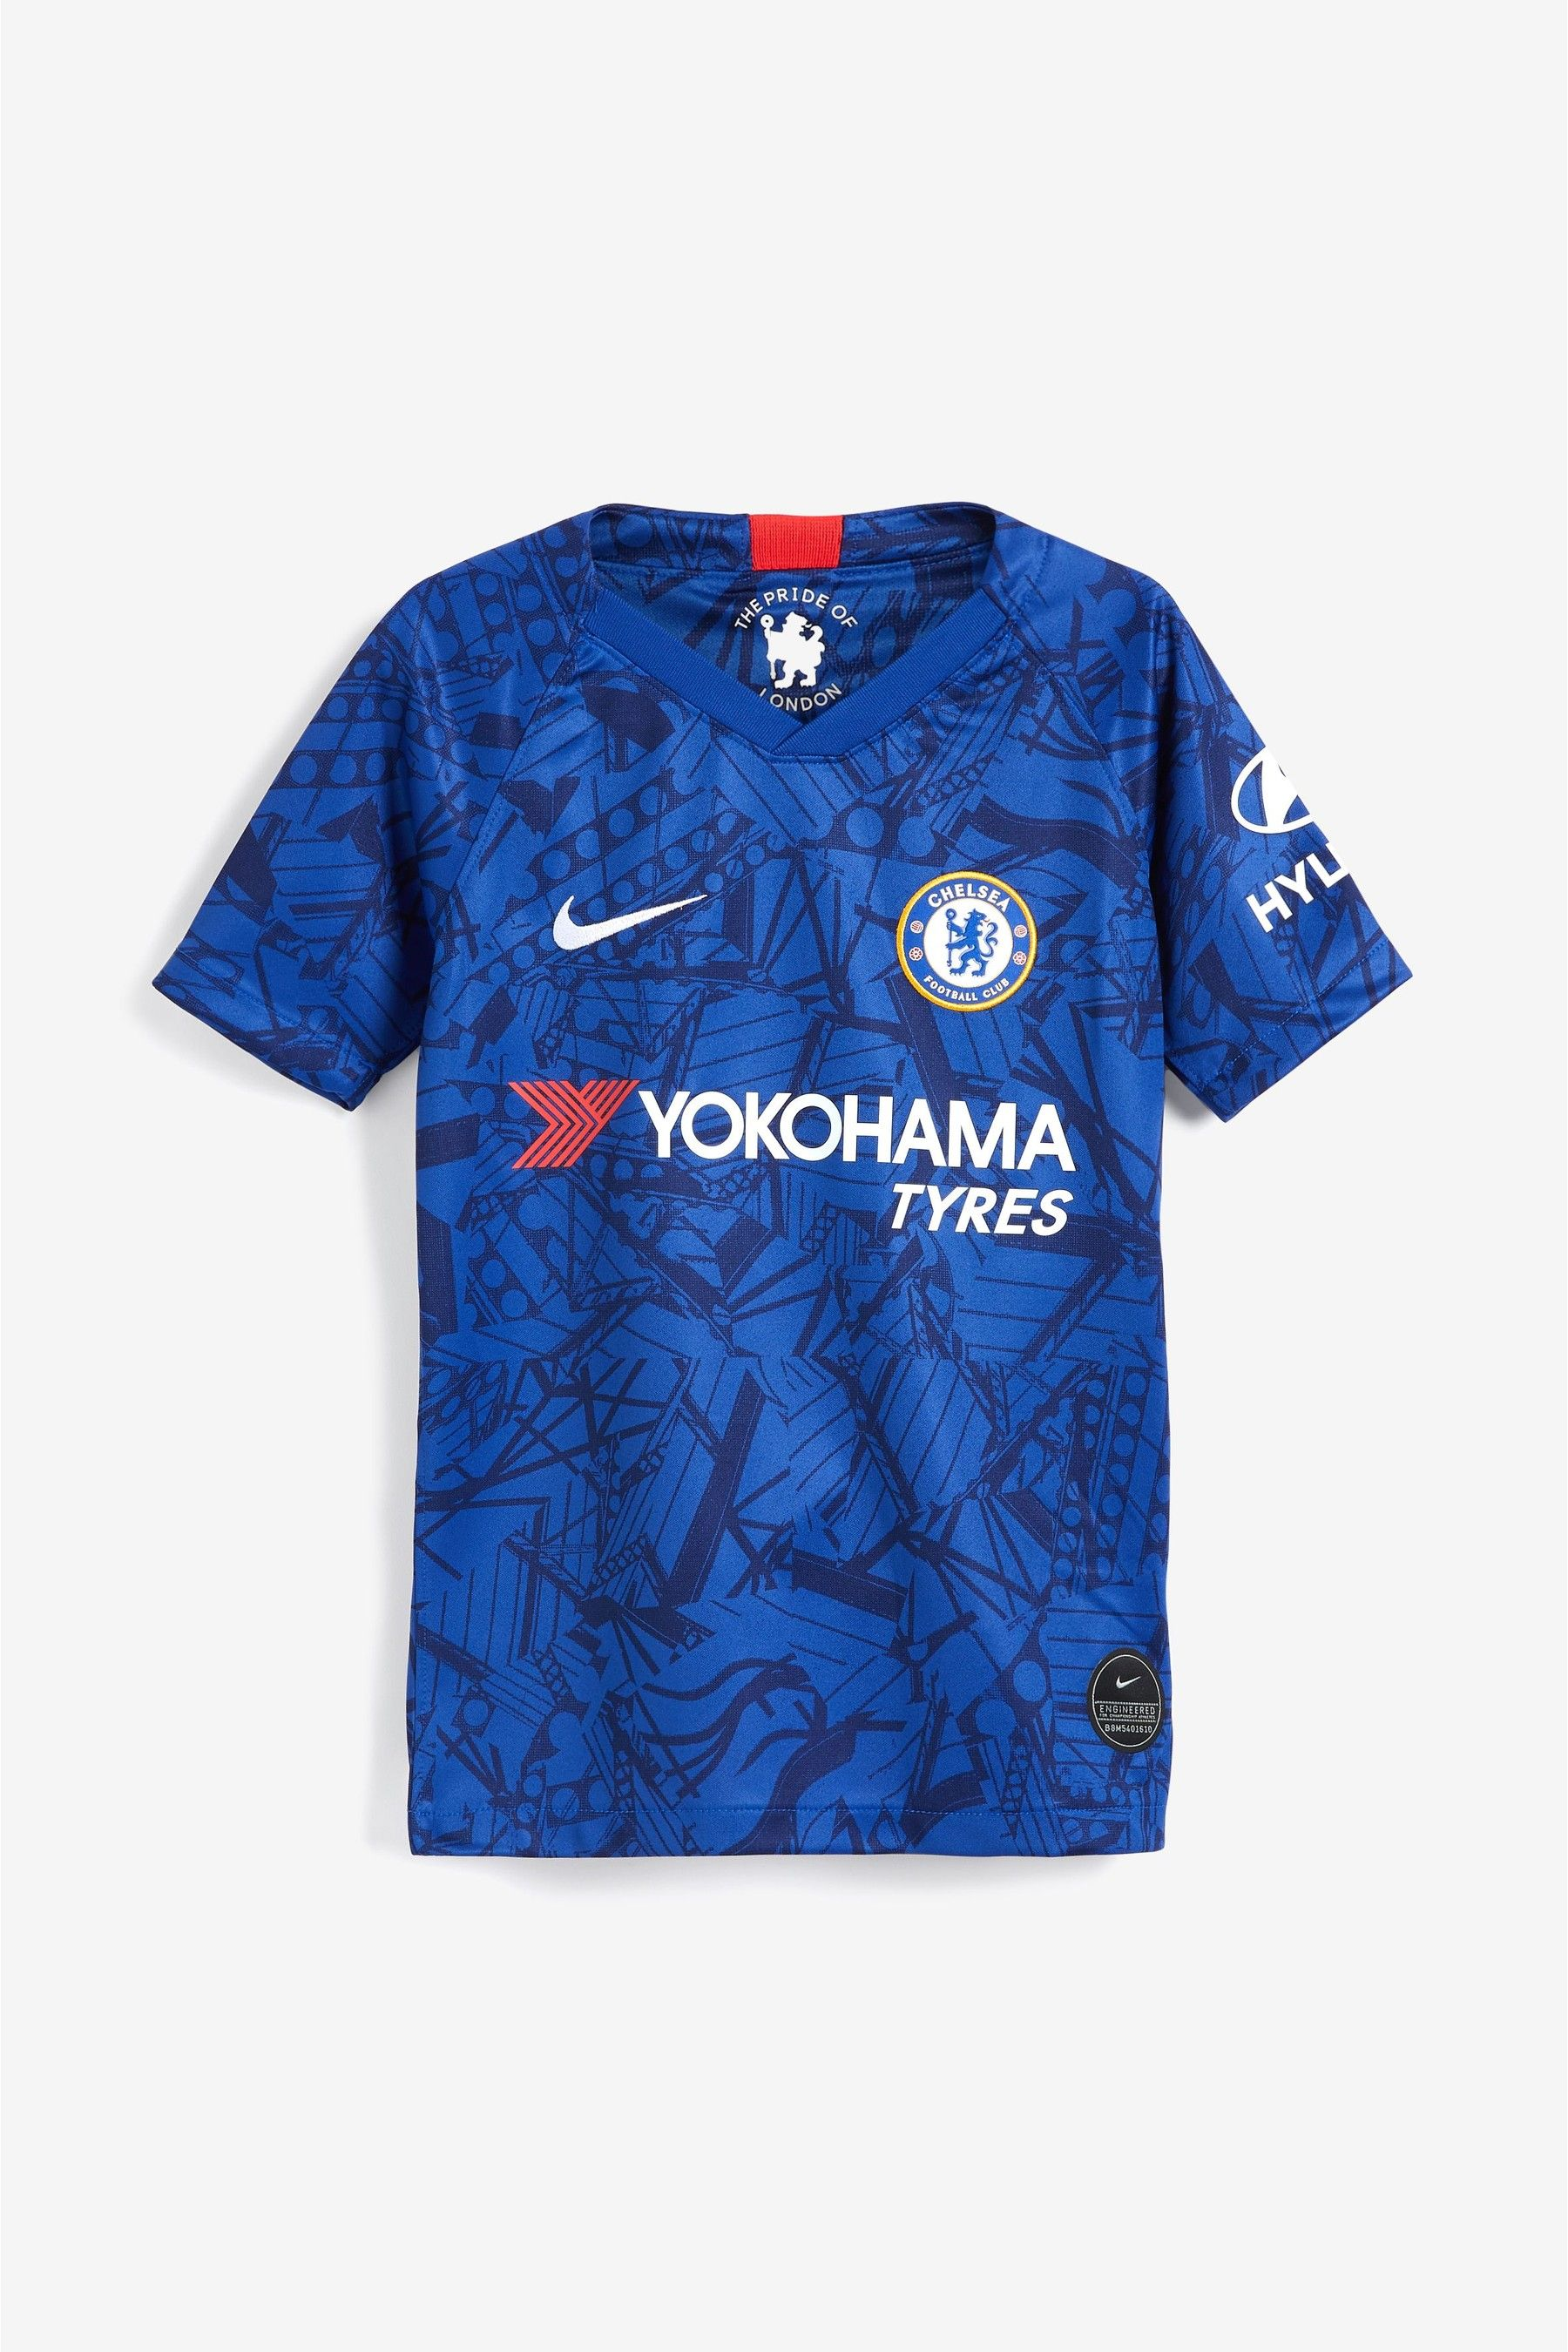 Boys Nike Youth Blue Chelsea Football Club 2019 2020 Home Jersey